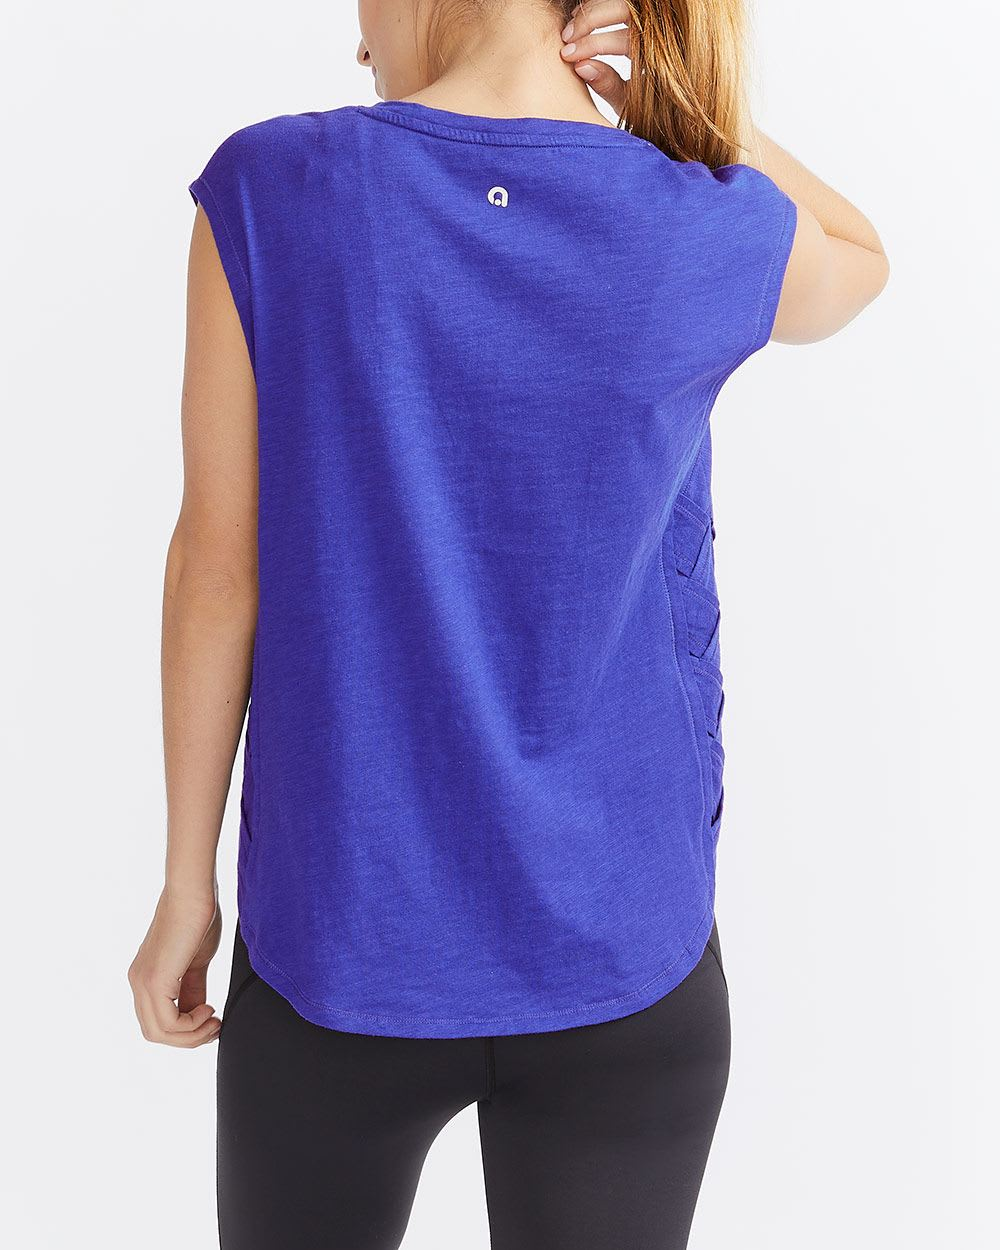 Hyba Braided T-Shirt